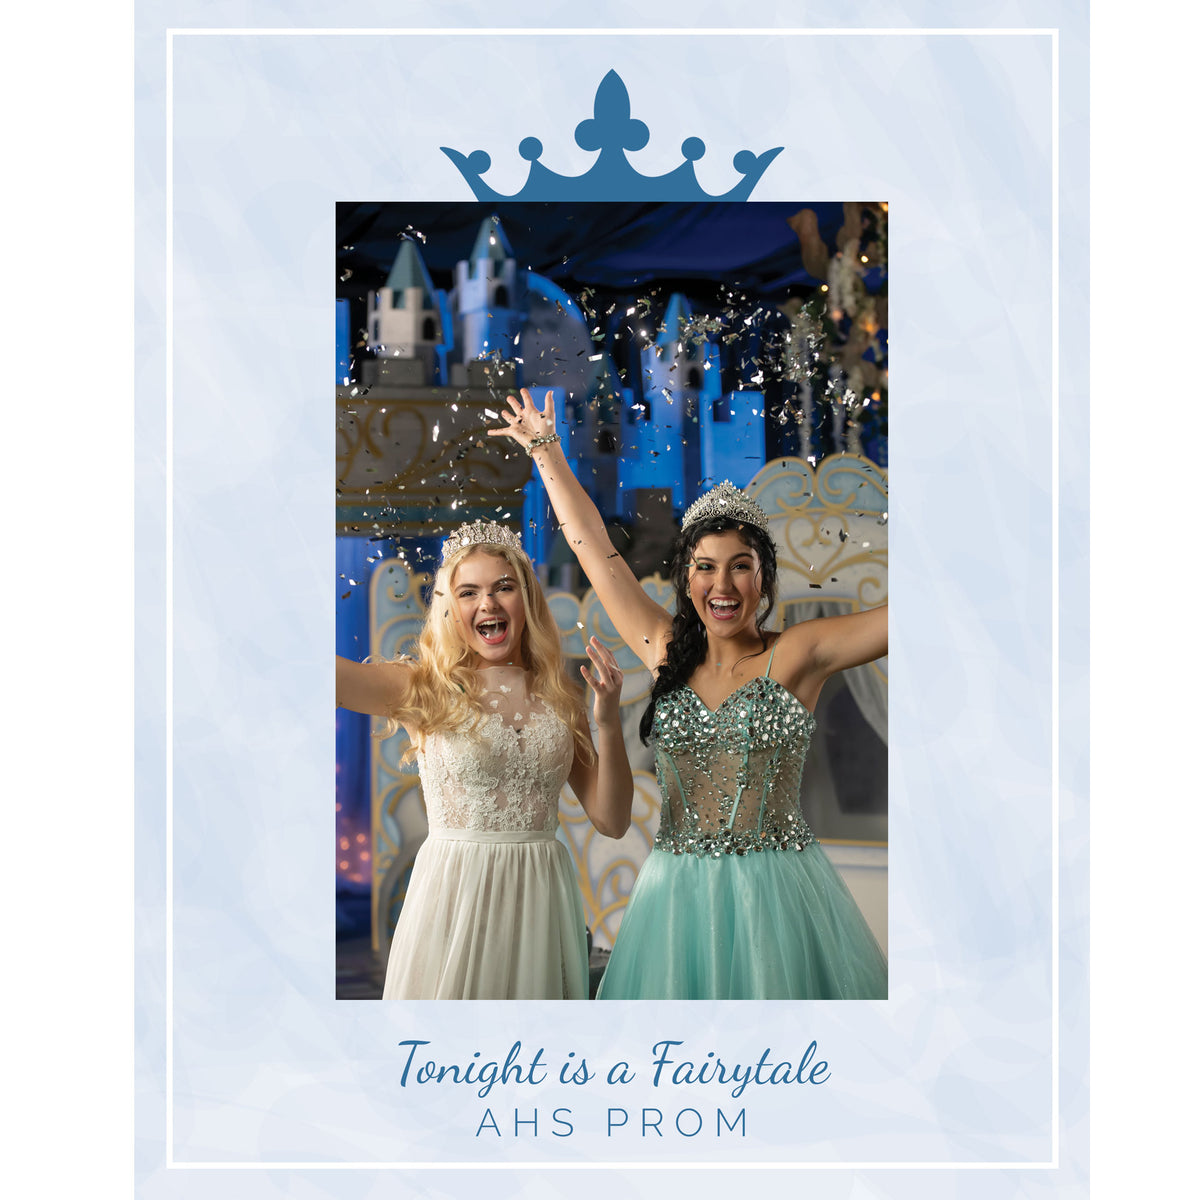 Tonight is a Fairytale Personalized Glass Frame